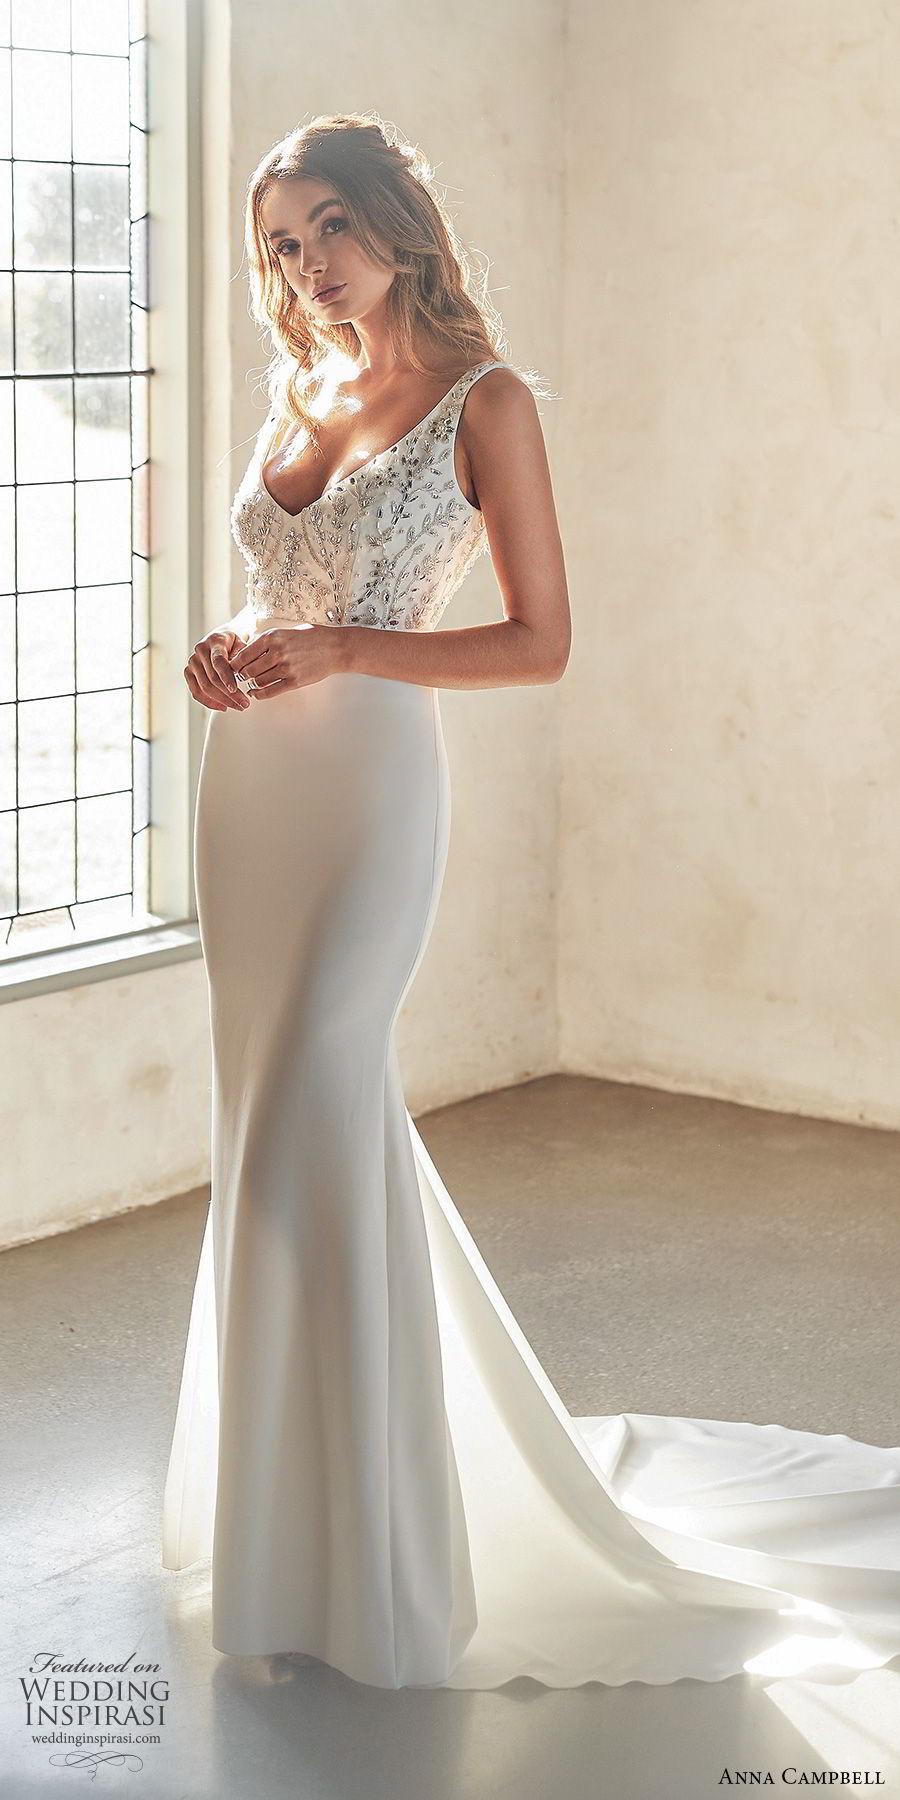 anna campbell 2020 bridal sleeveless thick straps deep v neckline embellished bodice clean skirt trumpet mermaid sheath wedding dress (1) elegant sexy low v back chapel train mv